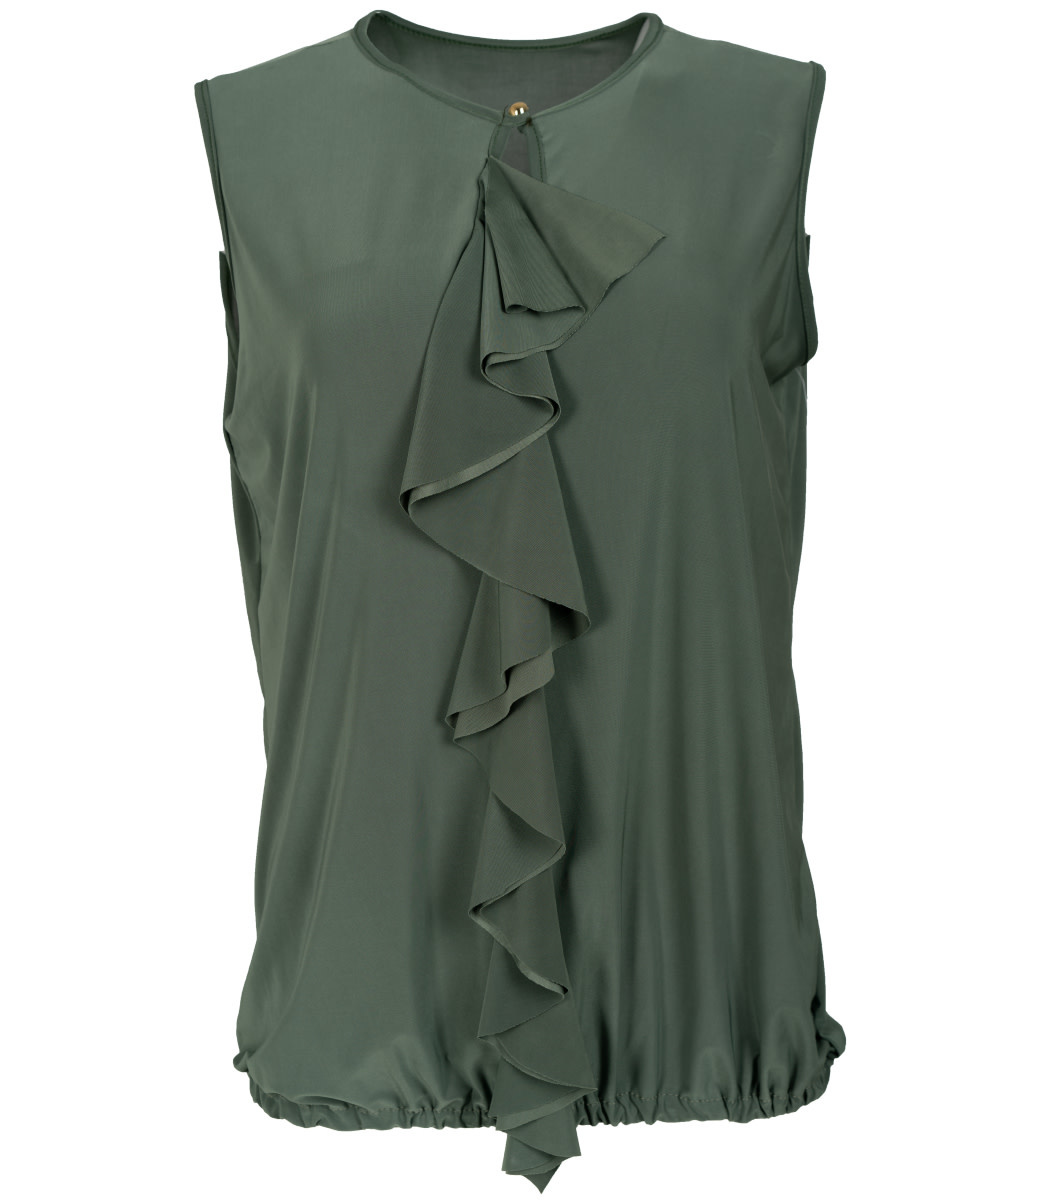 Wannahavesfashion Top groen Angela